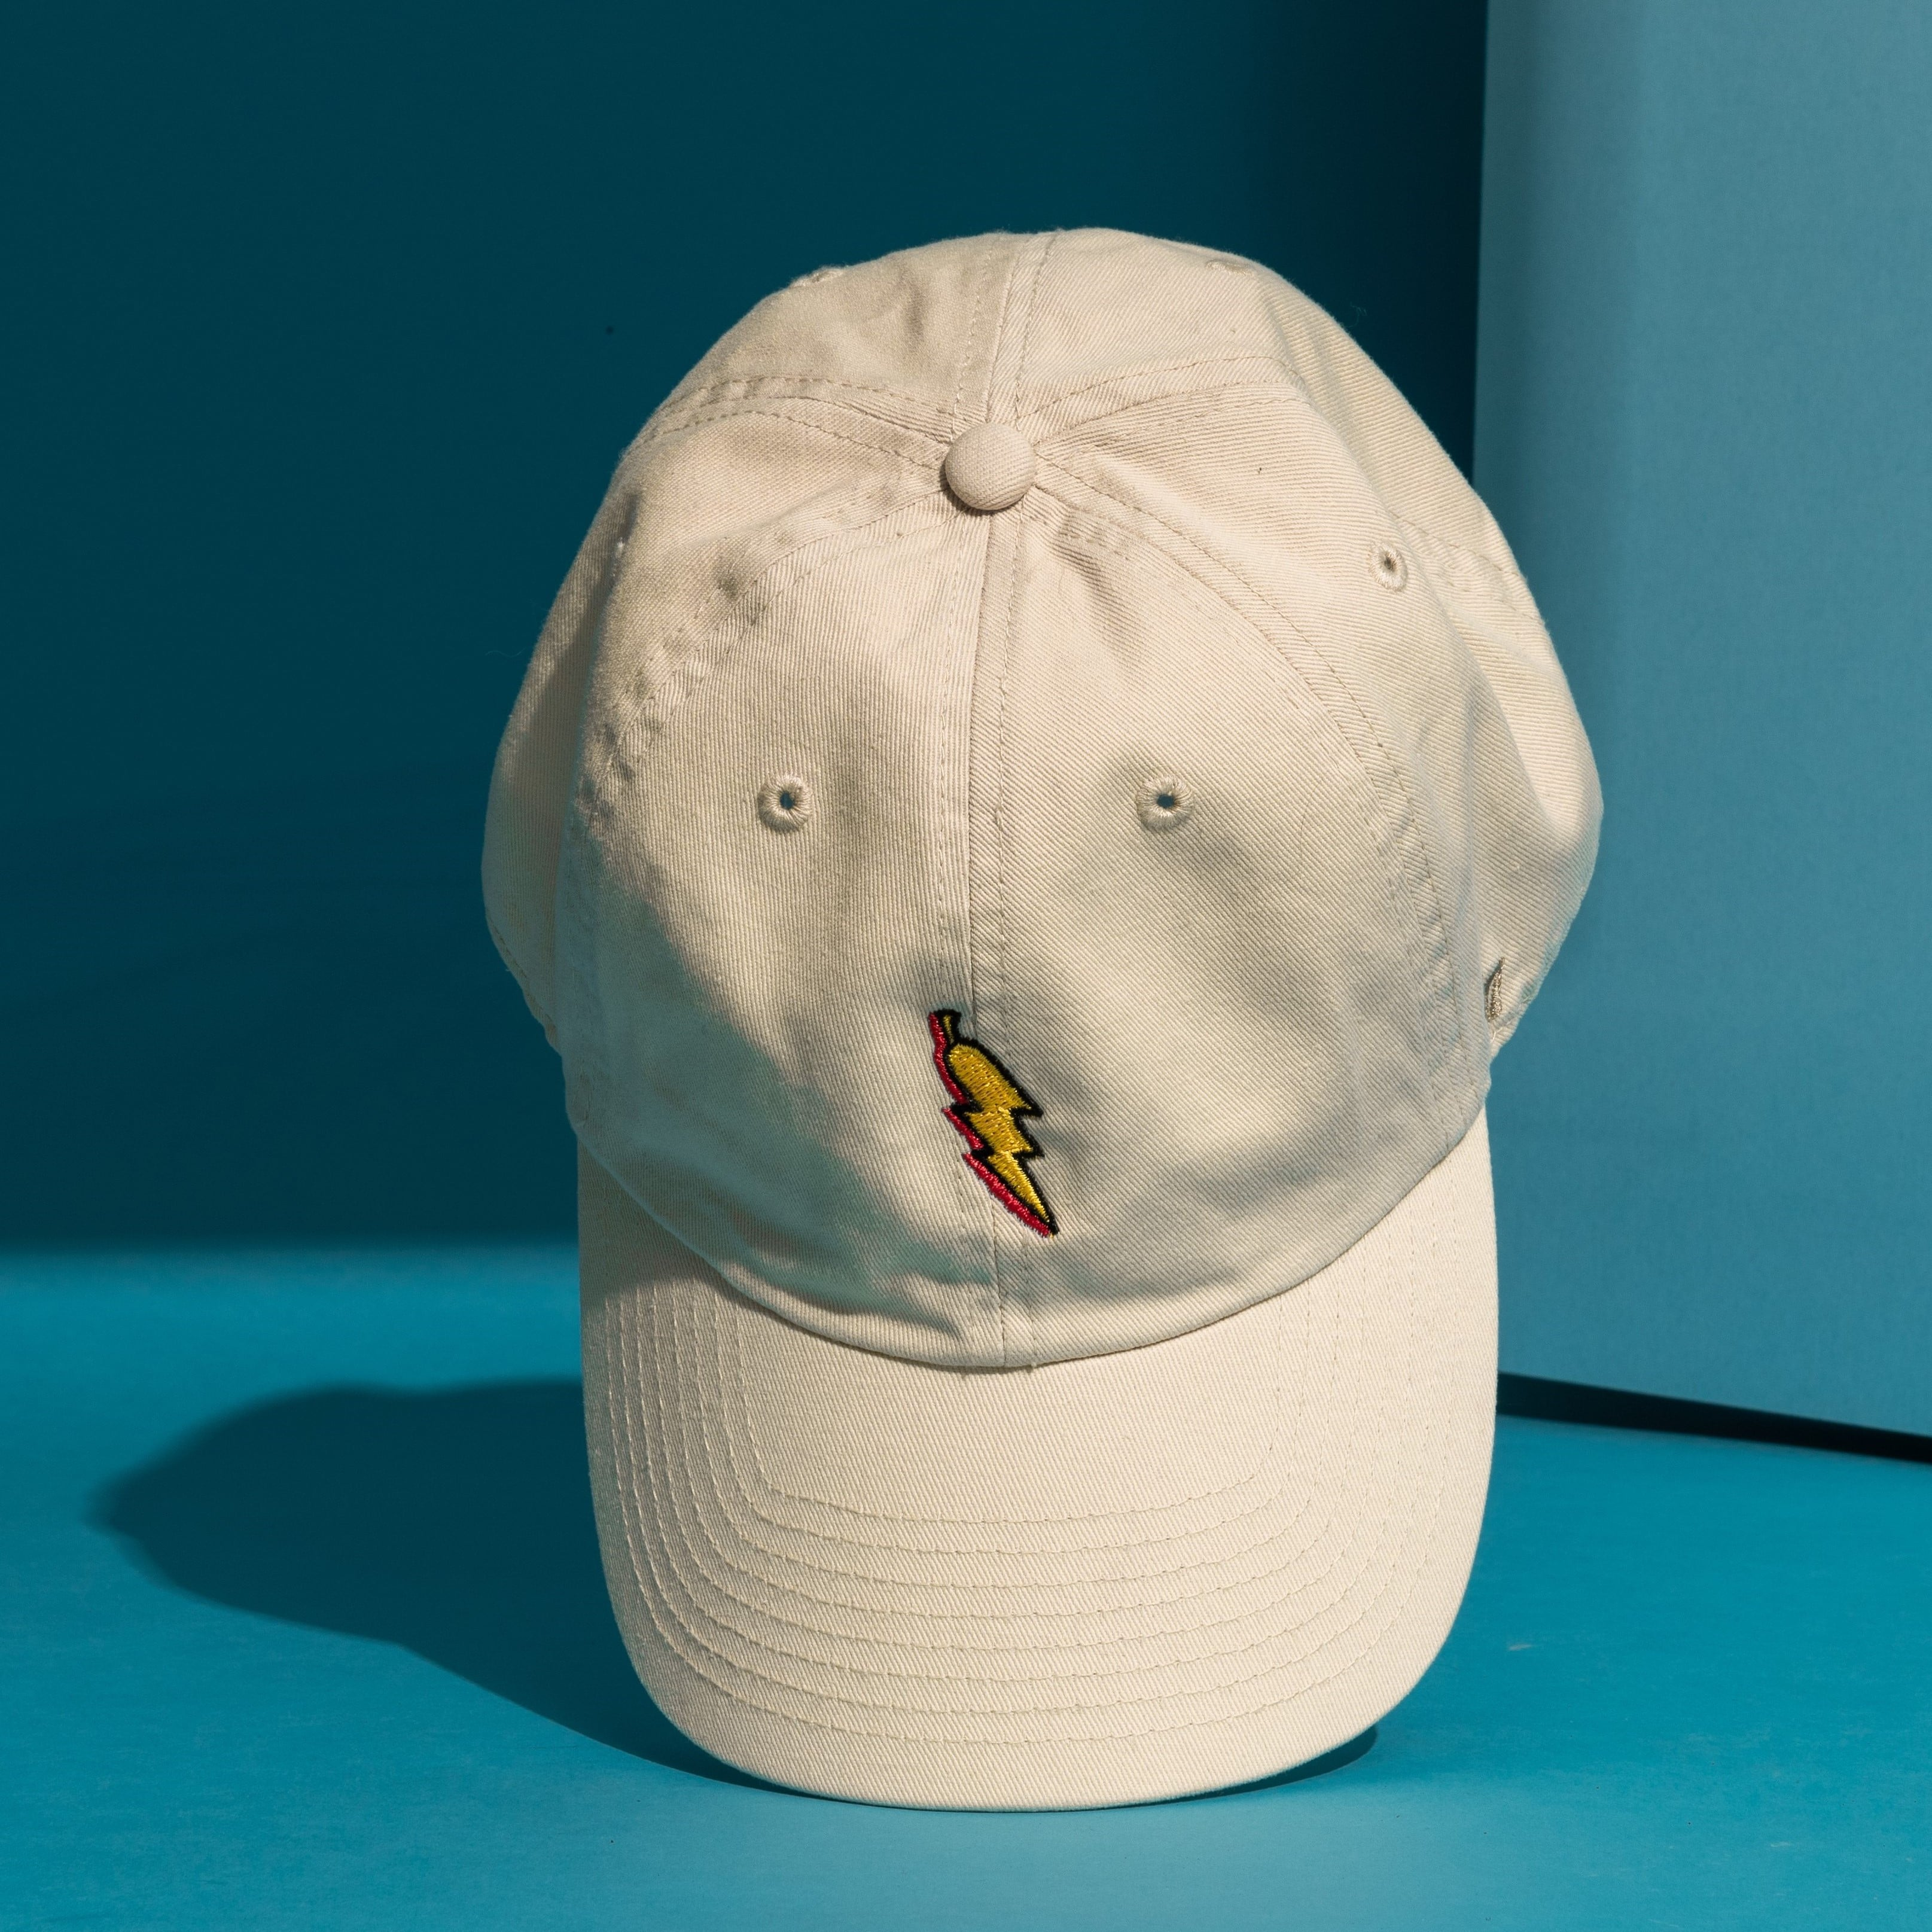 grandpa baseball cap shown standing on the bill of the cap showing it's lightning bolt logo on the front